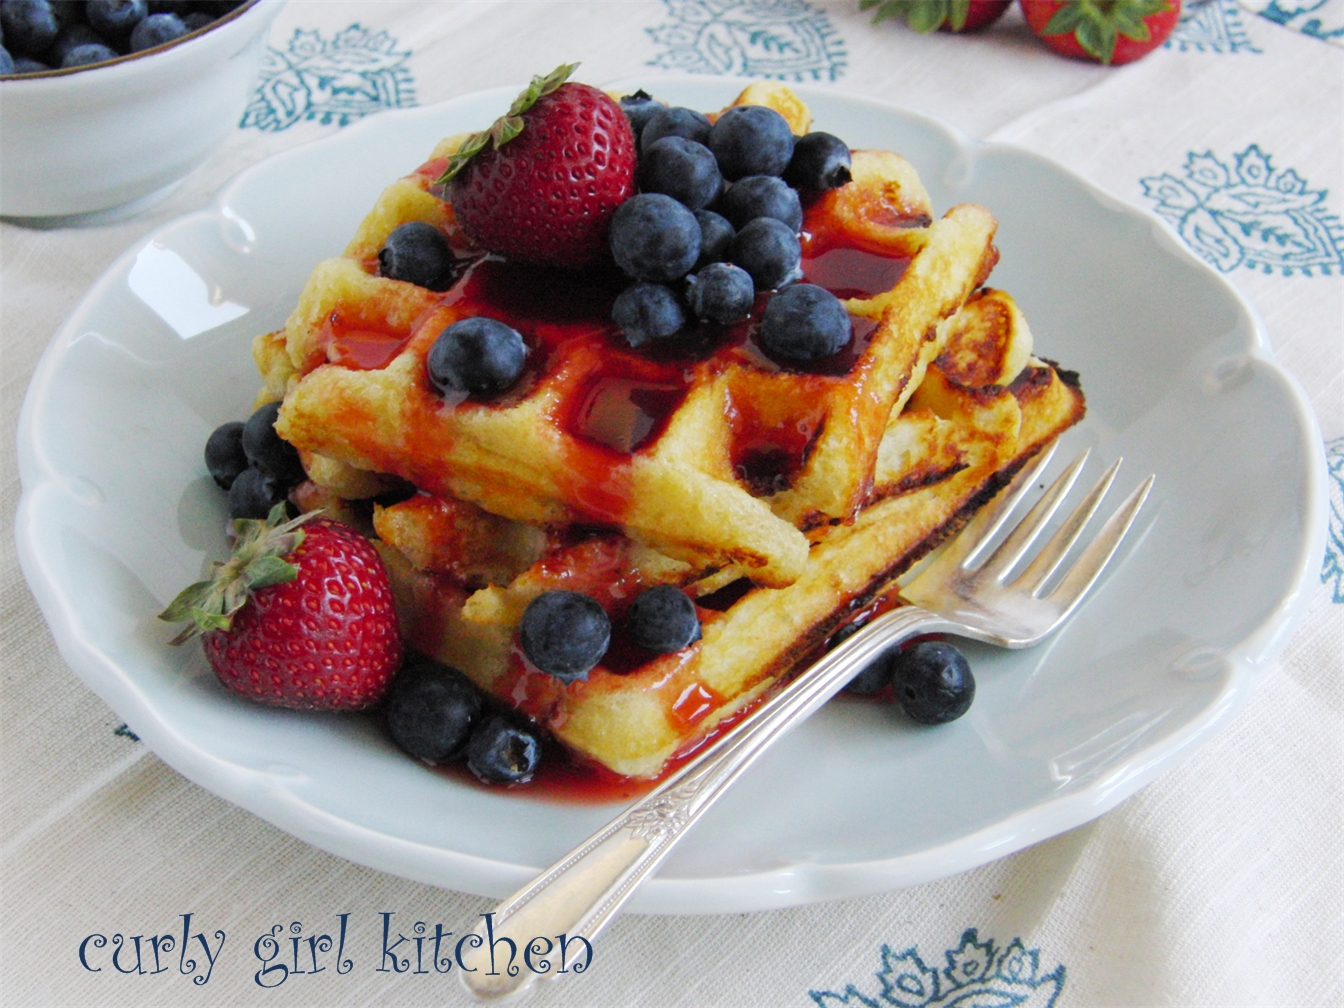 decided that last Sunday should be a waffle morning. Fresh blueberries ...